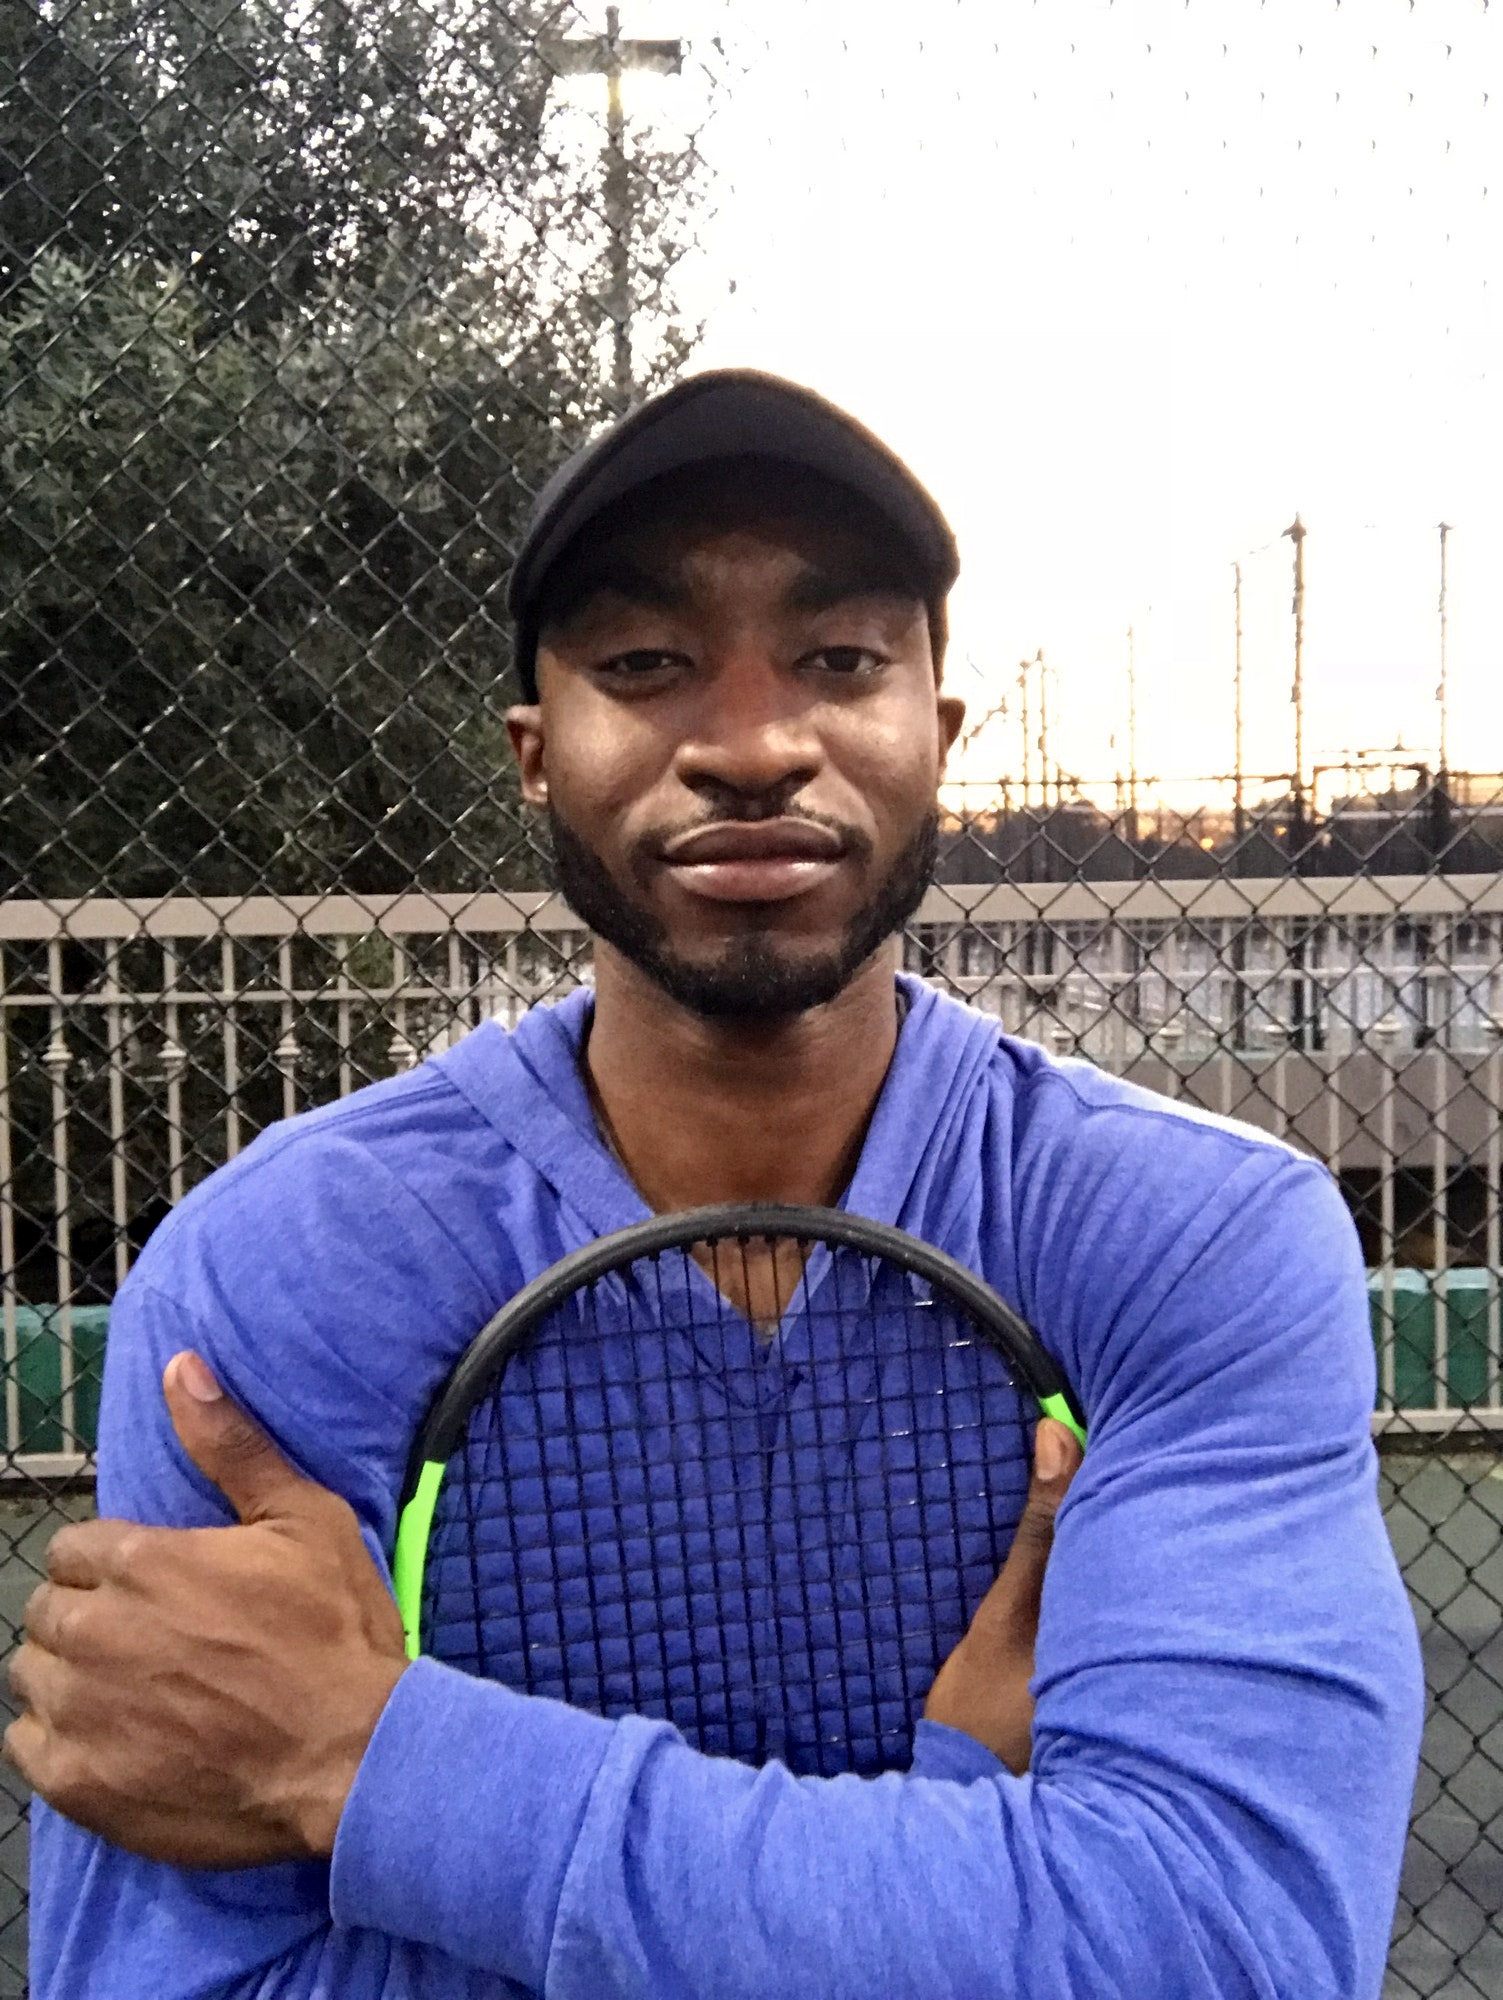 Josh D. teaches tennis lessons in San Jose, CA